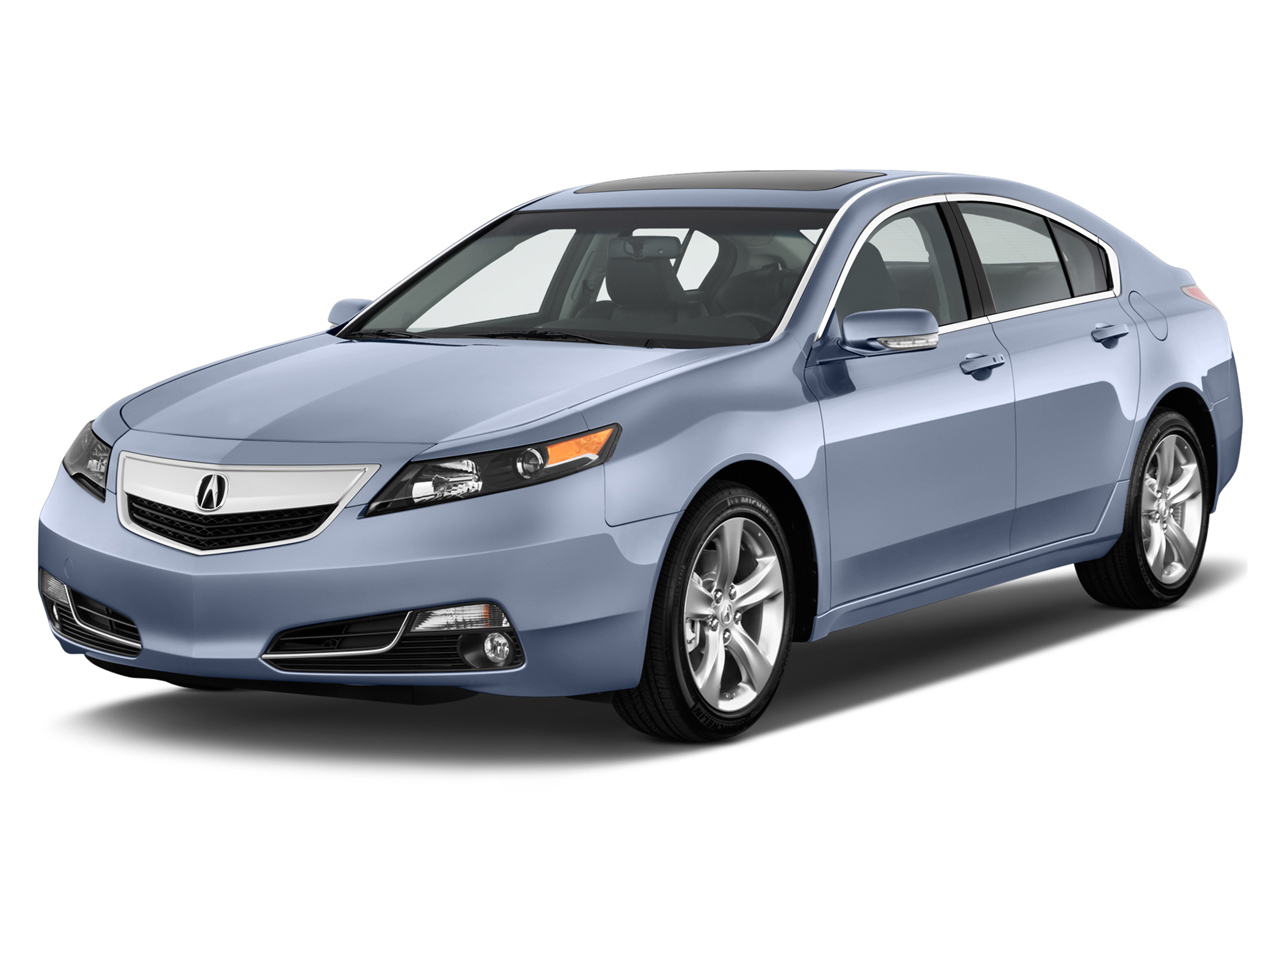 2012 acura tl safety review and crash test ratings the car connection. Black Bedroom Furniture Sets. Home Design Ideas